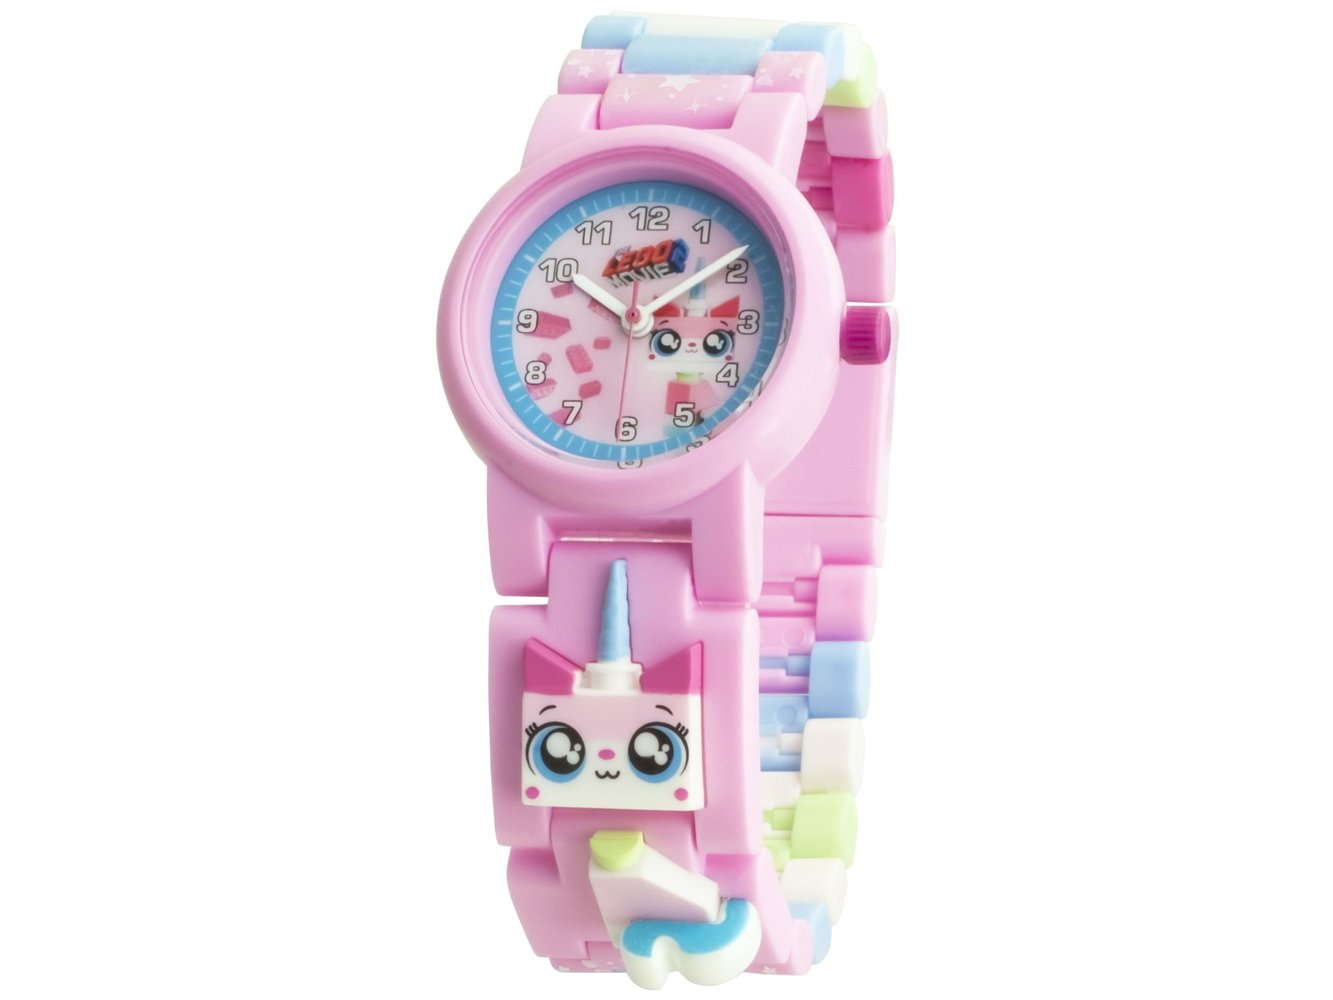 Unikitty Buildable Watch